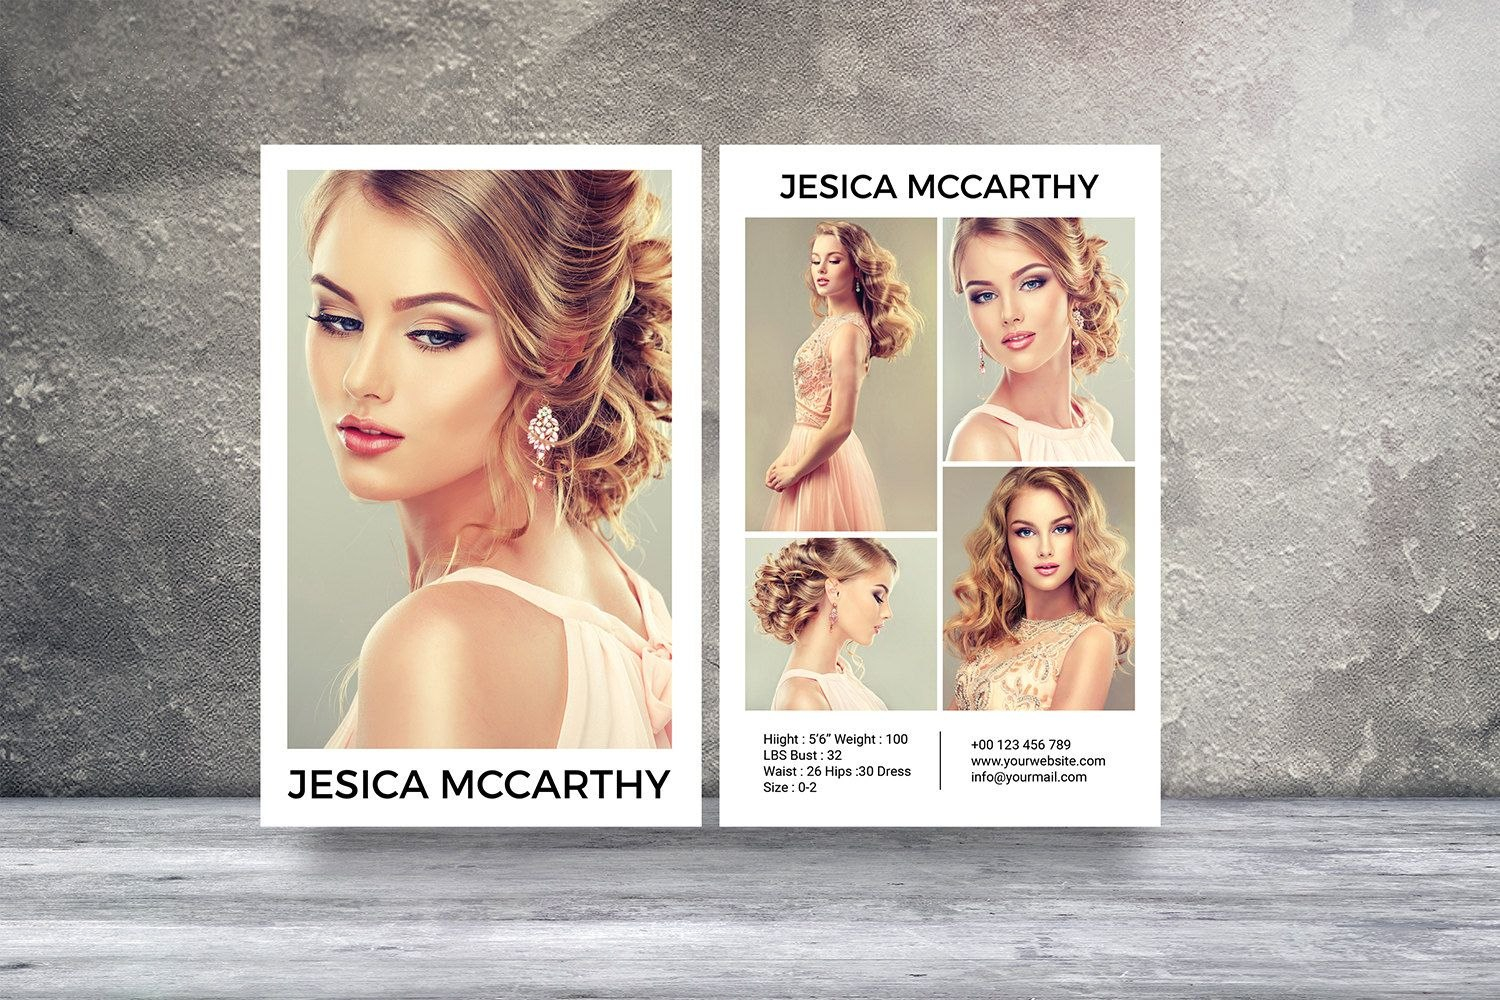 Template Ideas Free Comp Phenomenal Card Model Photoshop Psd Intended For Free Model Comp Card Template Psd